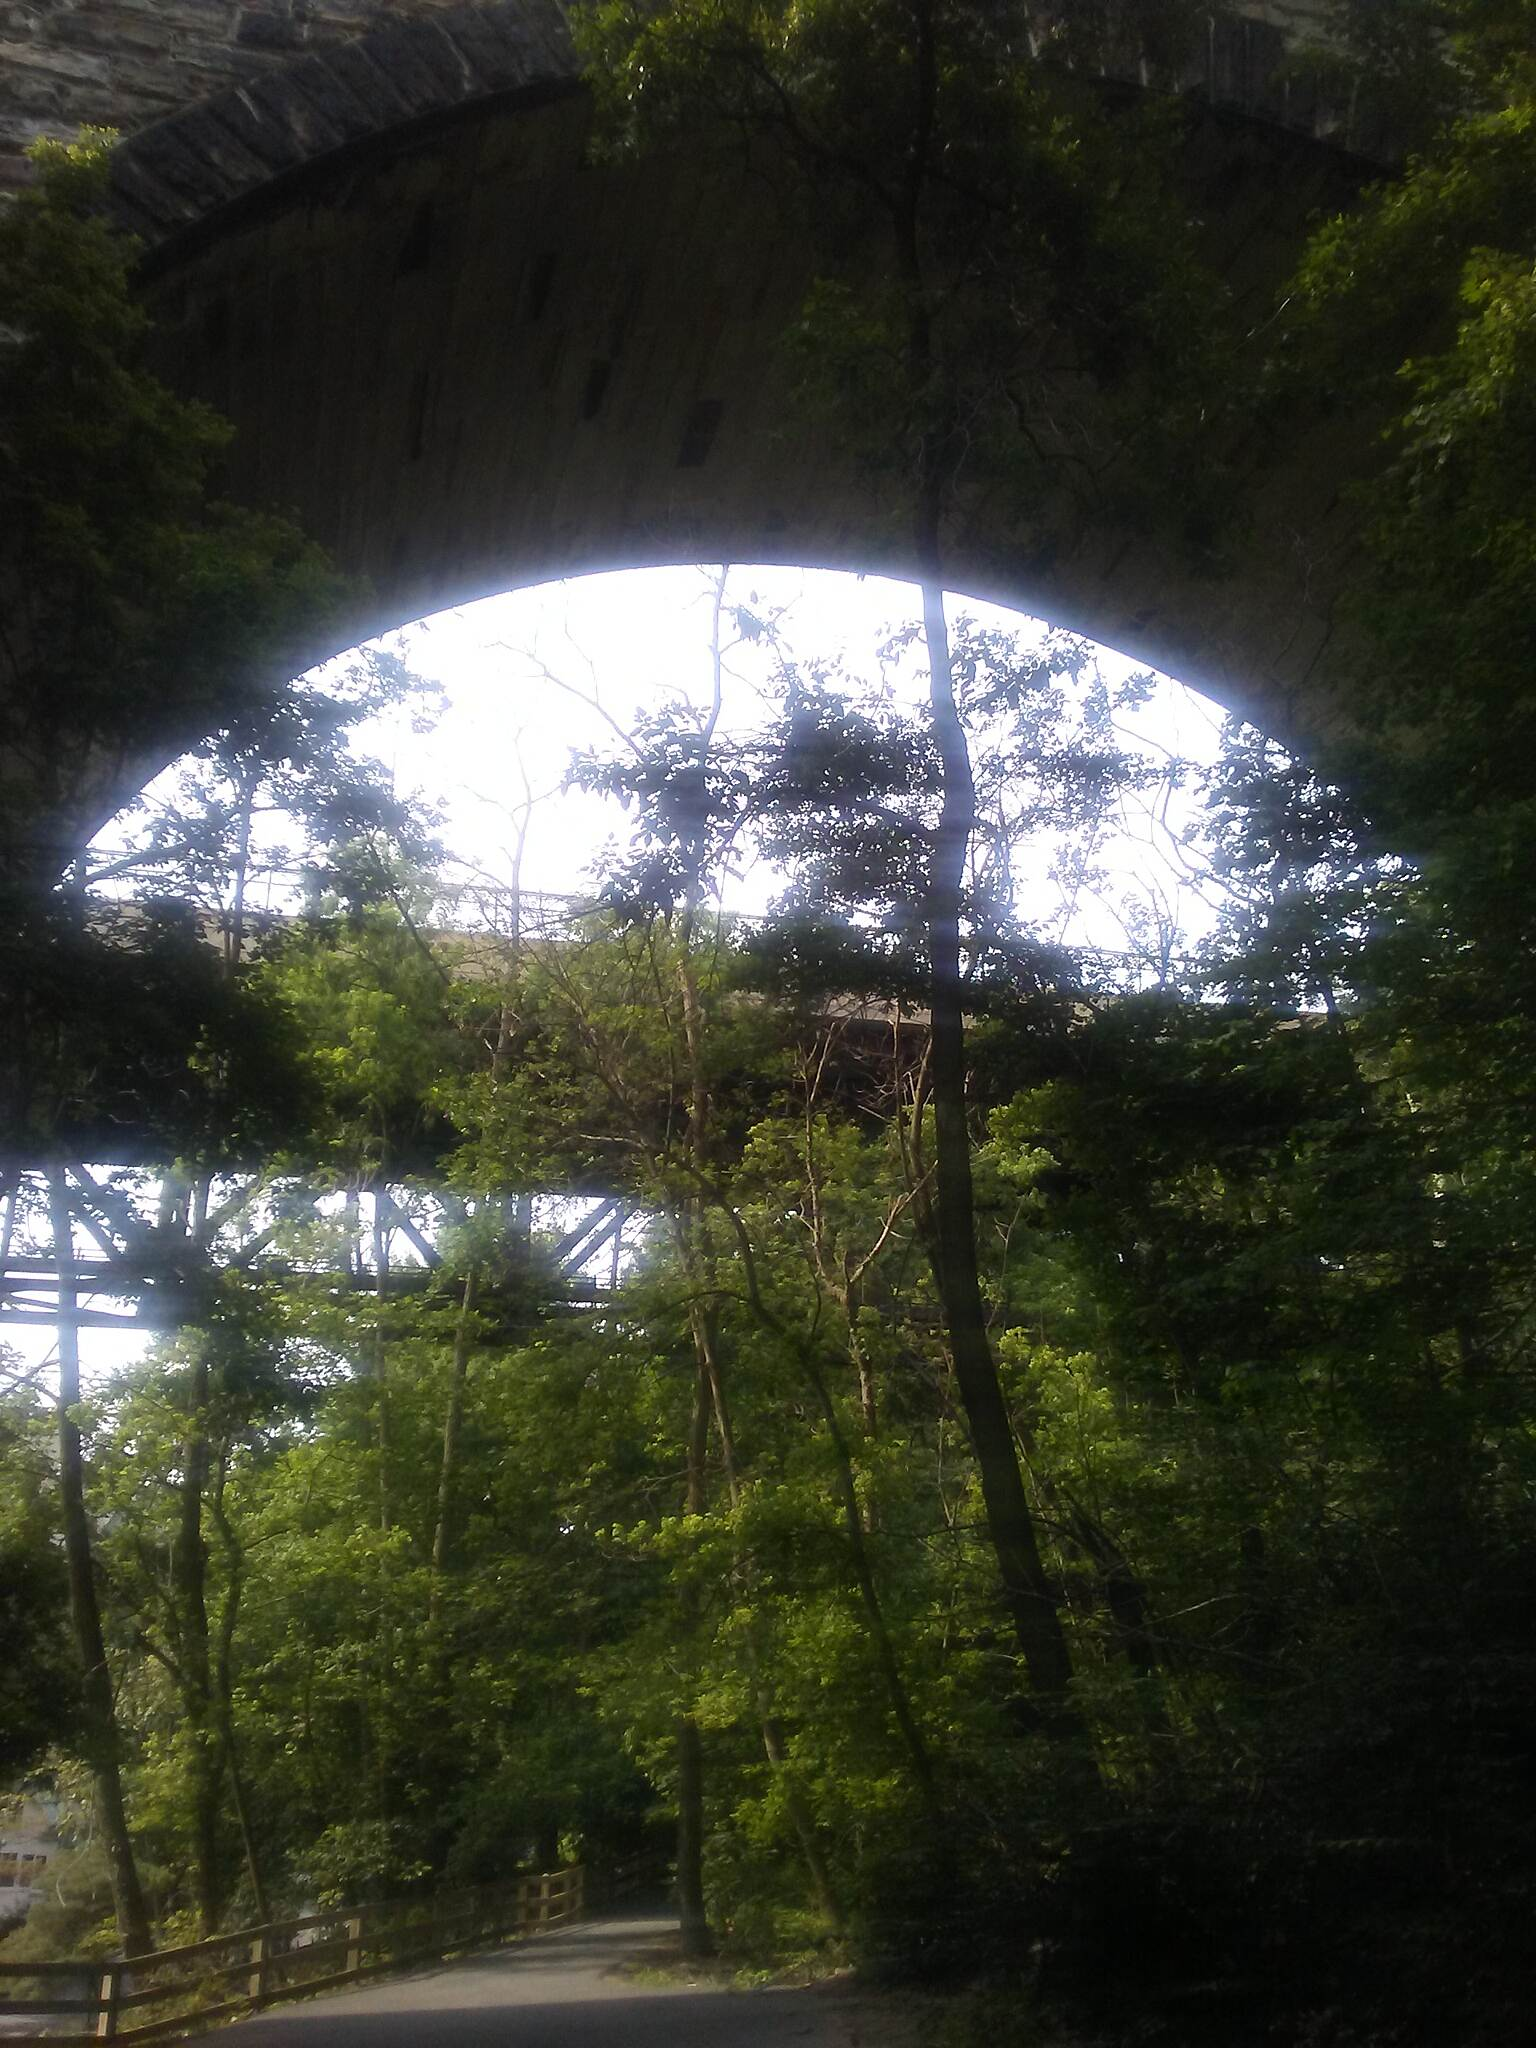 Northern Delaware Greenway Trail Northern Delaware Greenway Looking north from beneath the trestle that carries the CSX RR over the Brandywine River and valley in Wilmington.